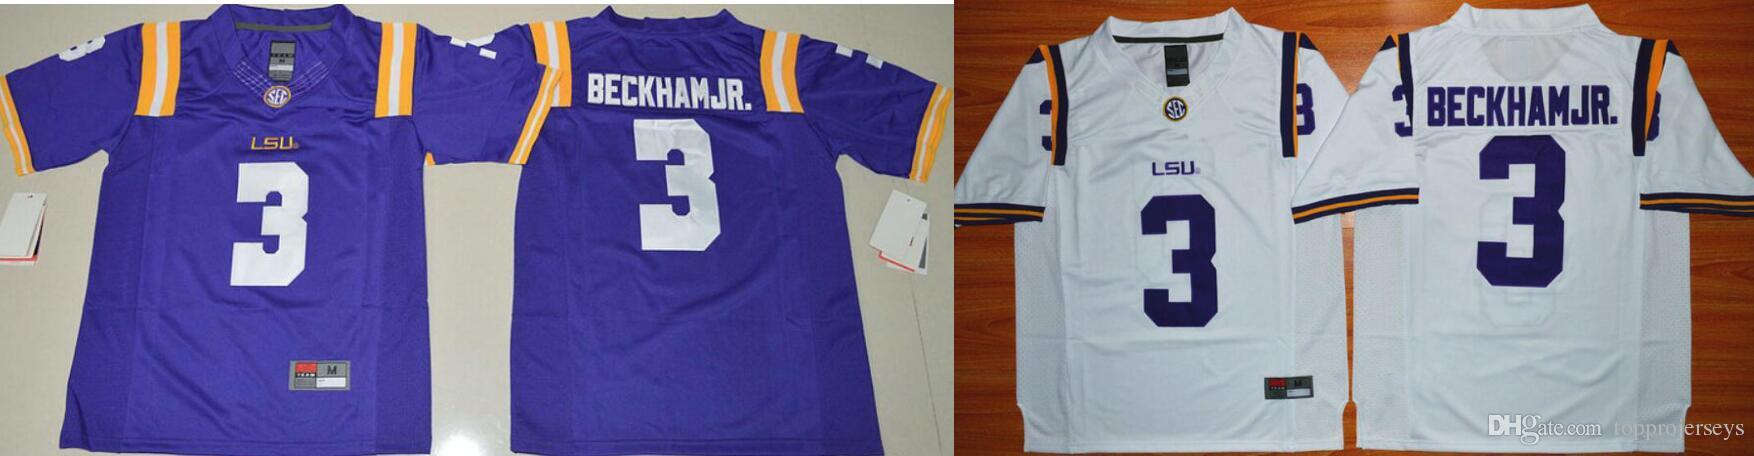 official photos 9fa2c 7d90b LSU Tigers #3 Odell Beckham Jr. Vintage Mens College American Football Pro  Sports Team Jerseys Shirts Cheap Stitched Embroidery on sale